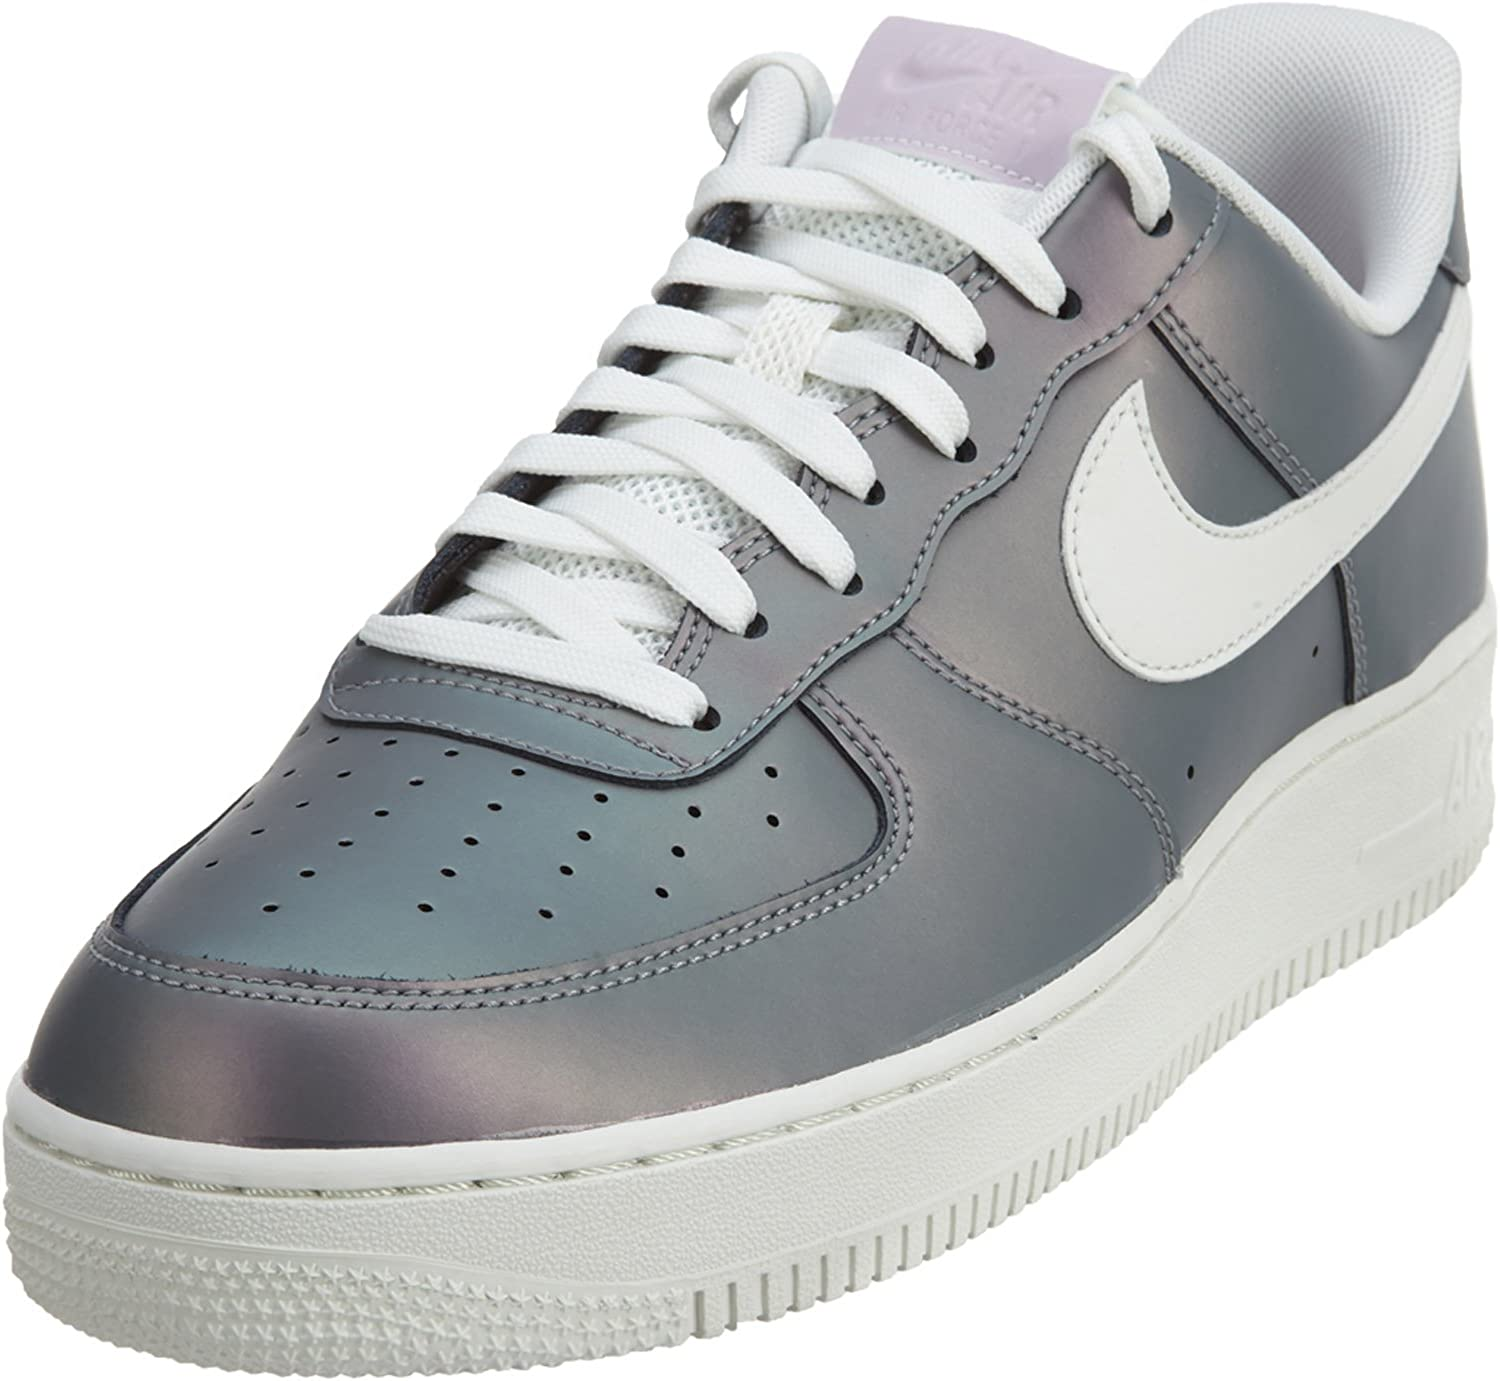 07 LV8 Iced Lilac 823511-500 (Size